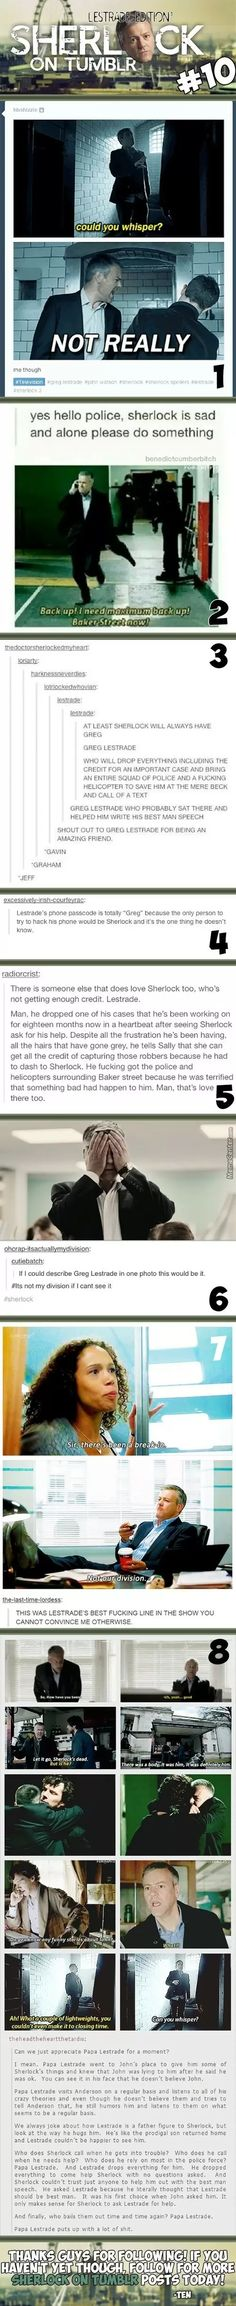 Sherlock On Tumblr #10 : Lestrade Edition!